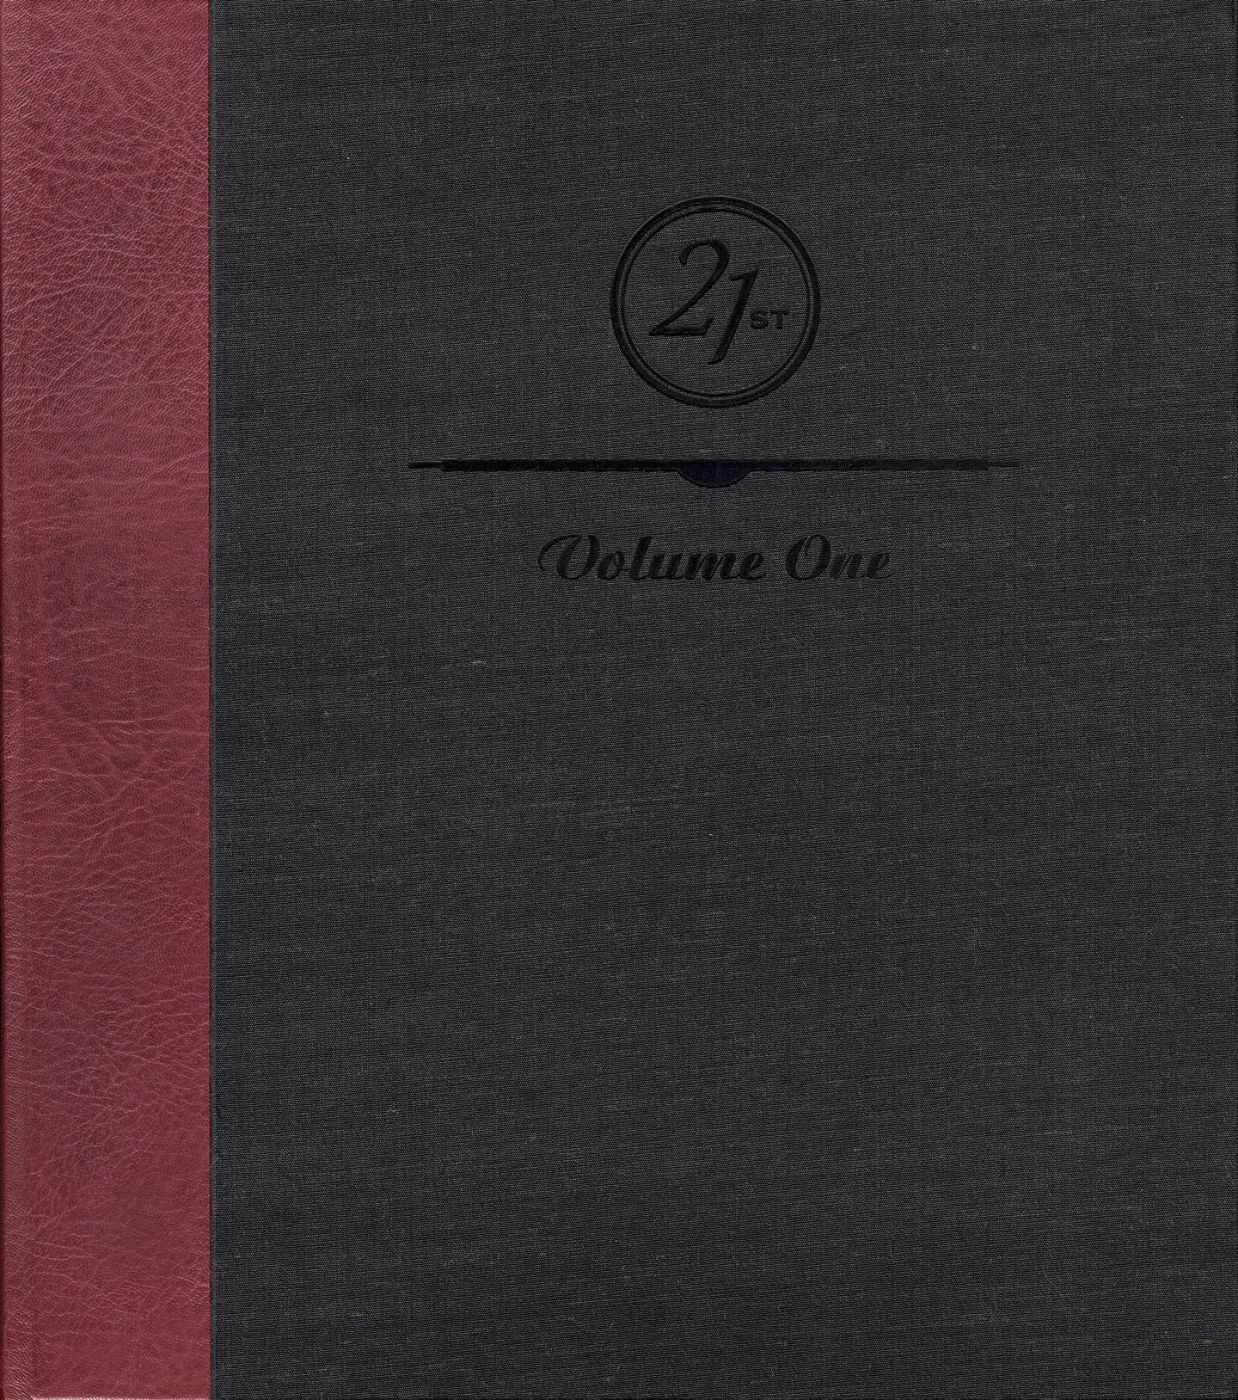 21st Editions Journal of Contemporary Photography Volume 1 (One/I), Deluxe Limited Edition